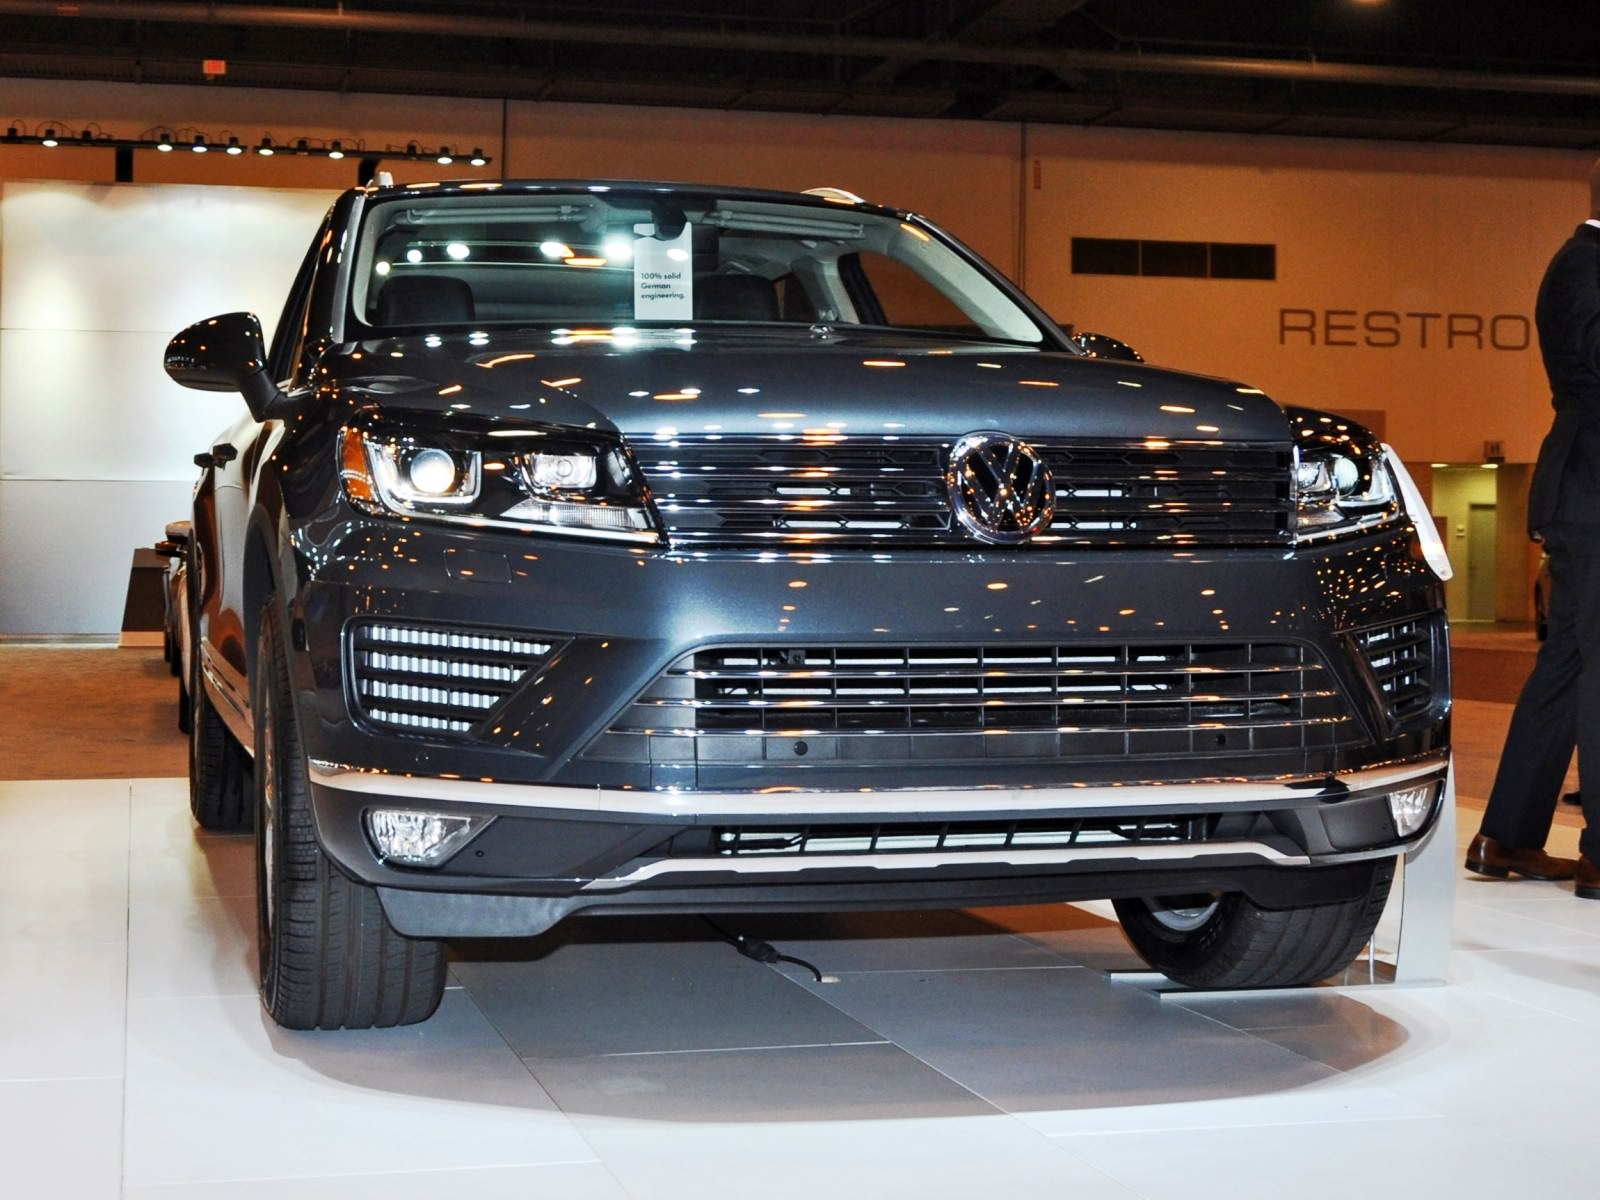 First Drive Review - 2015 Volkswagen Touareg TDI Feels Light, Quick and Lux 19